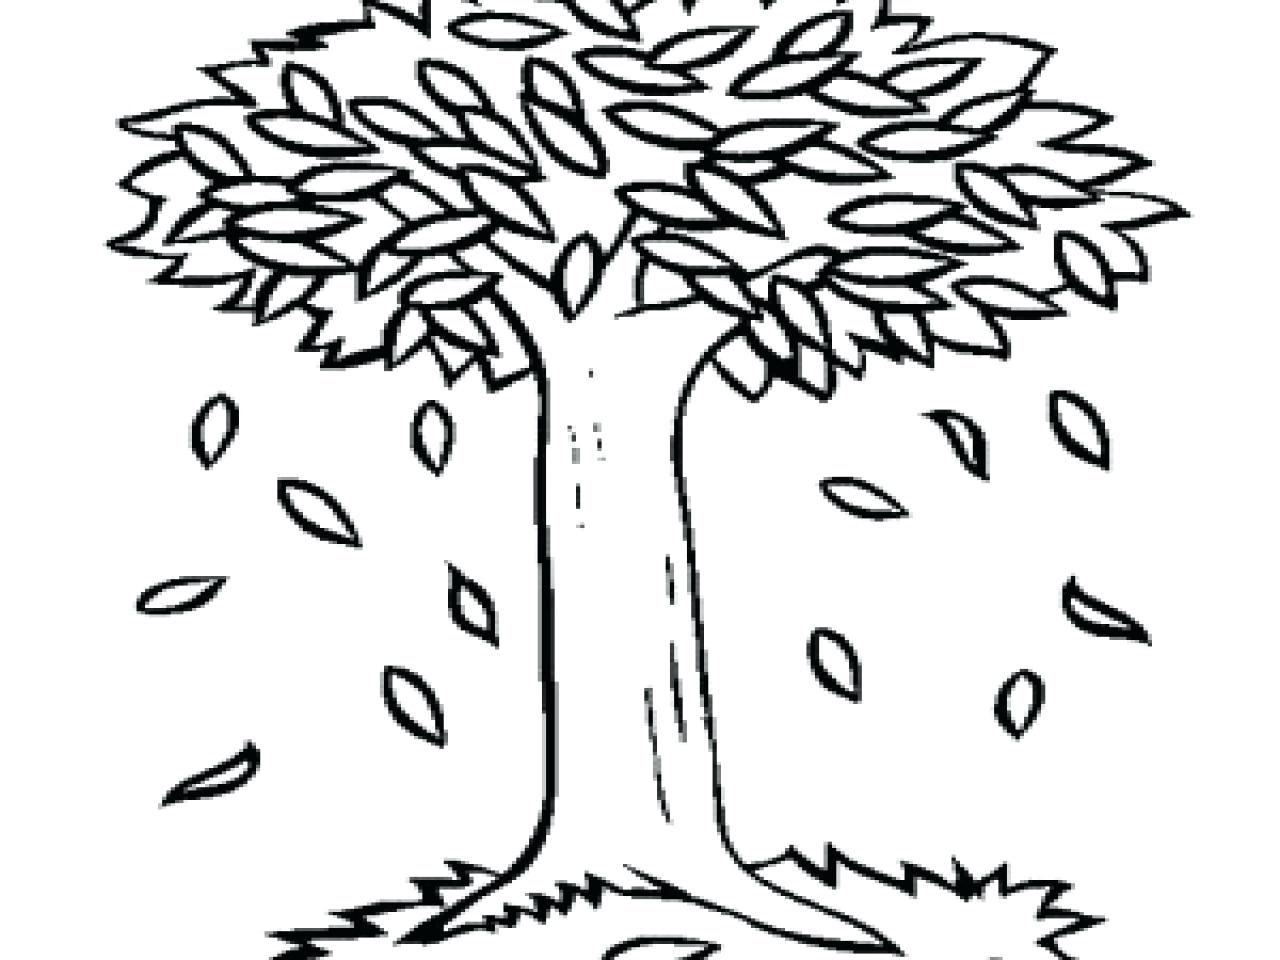 Autumn Trees Drawing at GetDrawings.com | Free for personal use ...